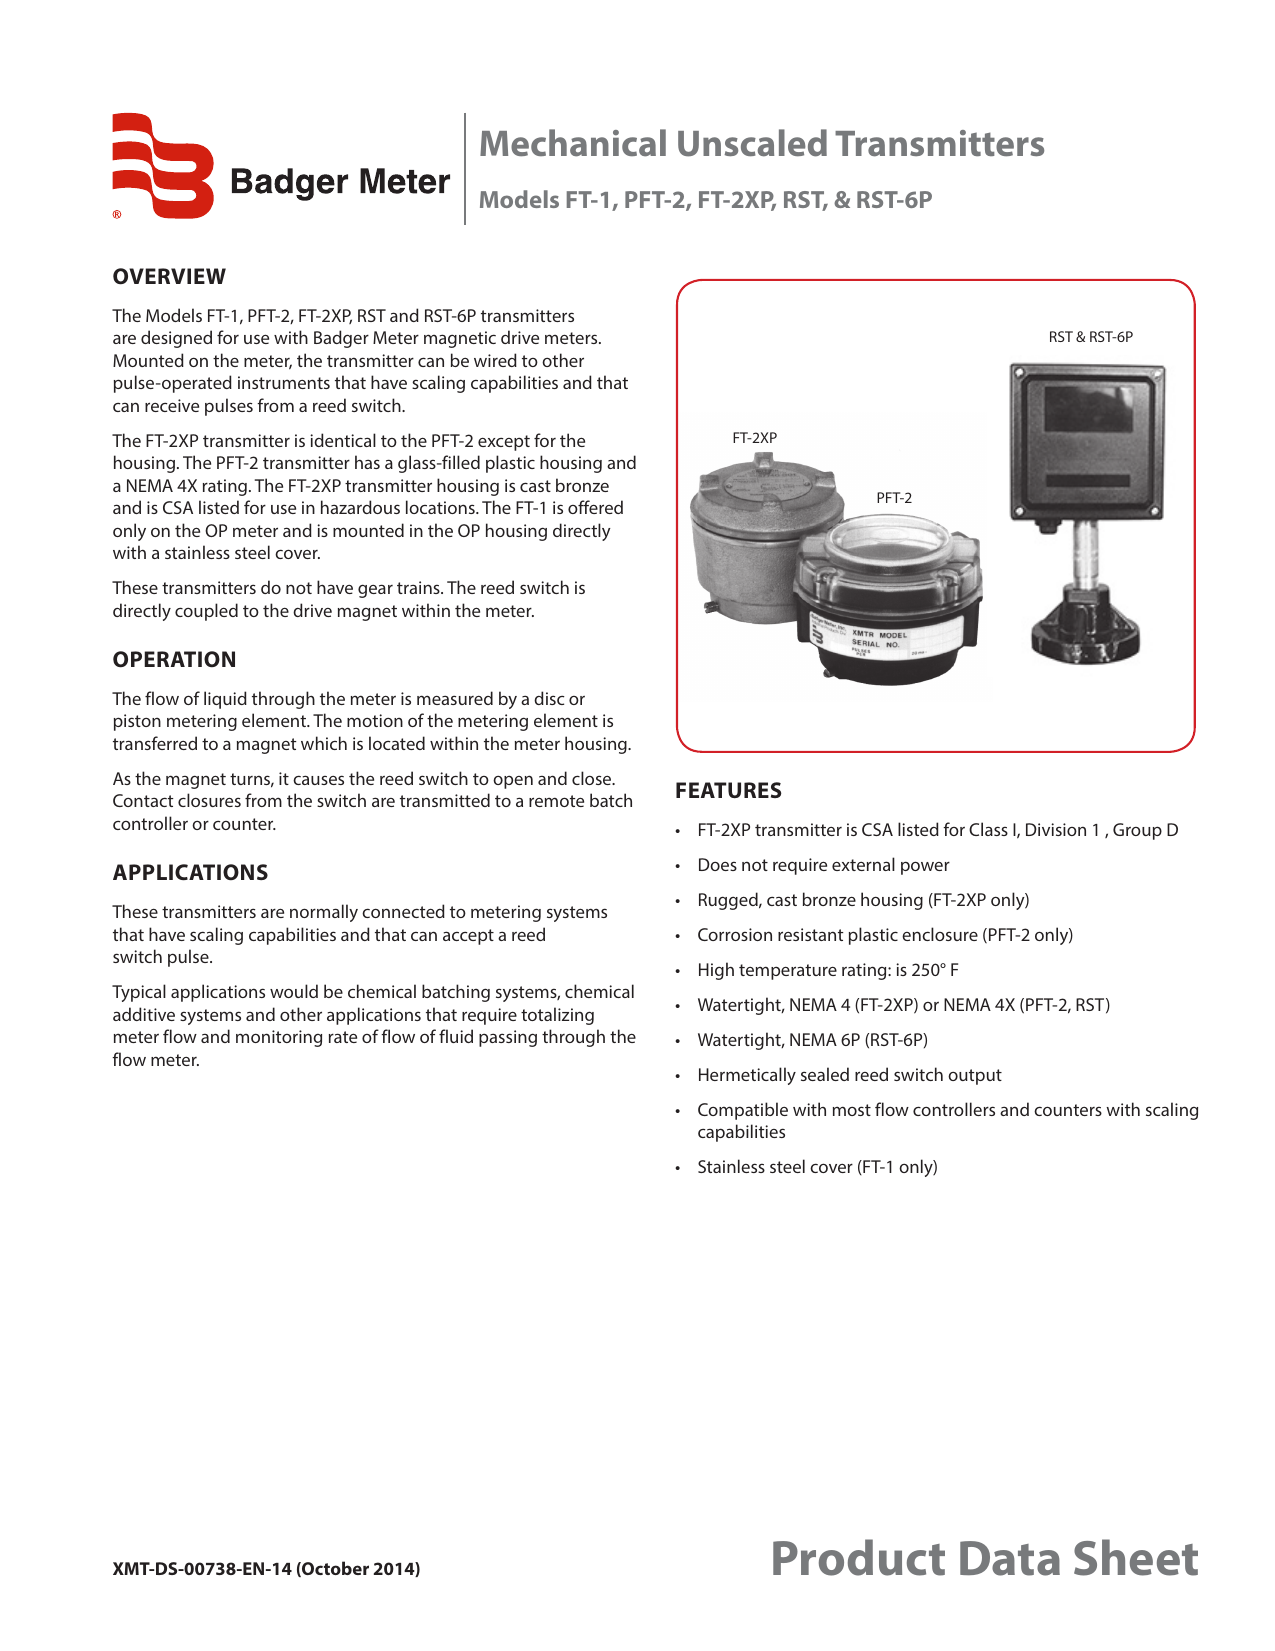 Product Data Sheet - Badger Meter Europa GmbH on home water meter installation diagrams, meter service diagrams, acme transformers electrical connection diagrams, meter socket wiring, meter form diagrams, 12s meter diagrams, meter socket diagram, house electrical meter diagrams,